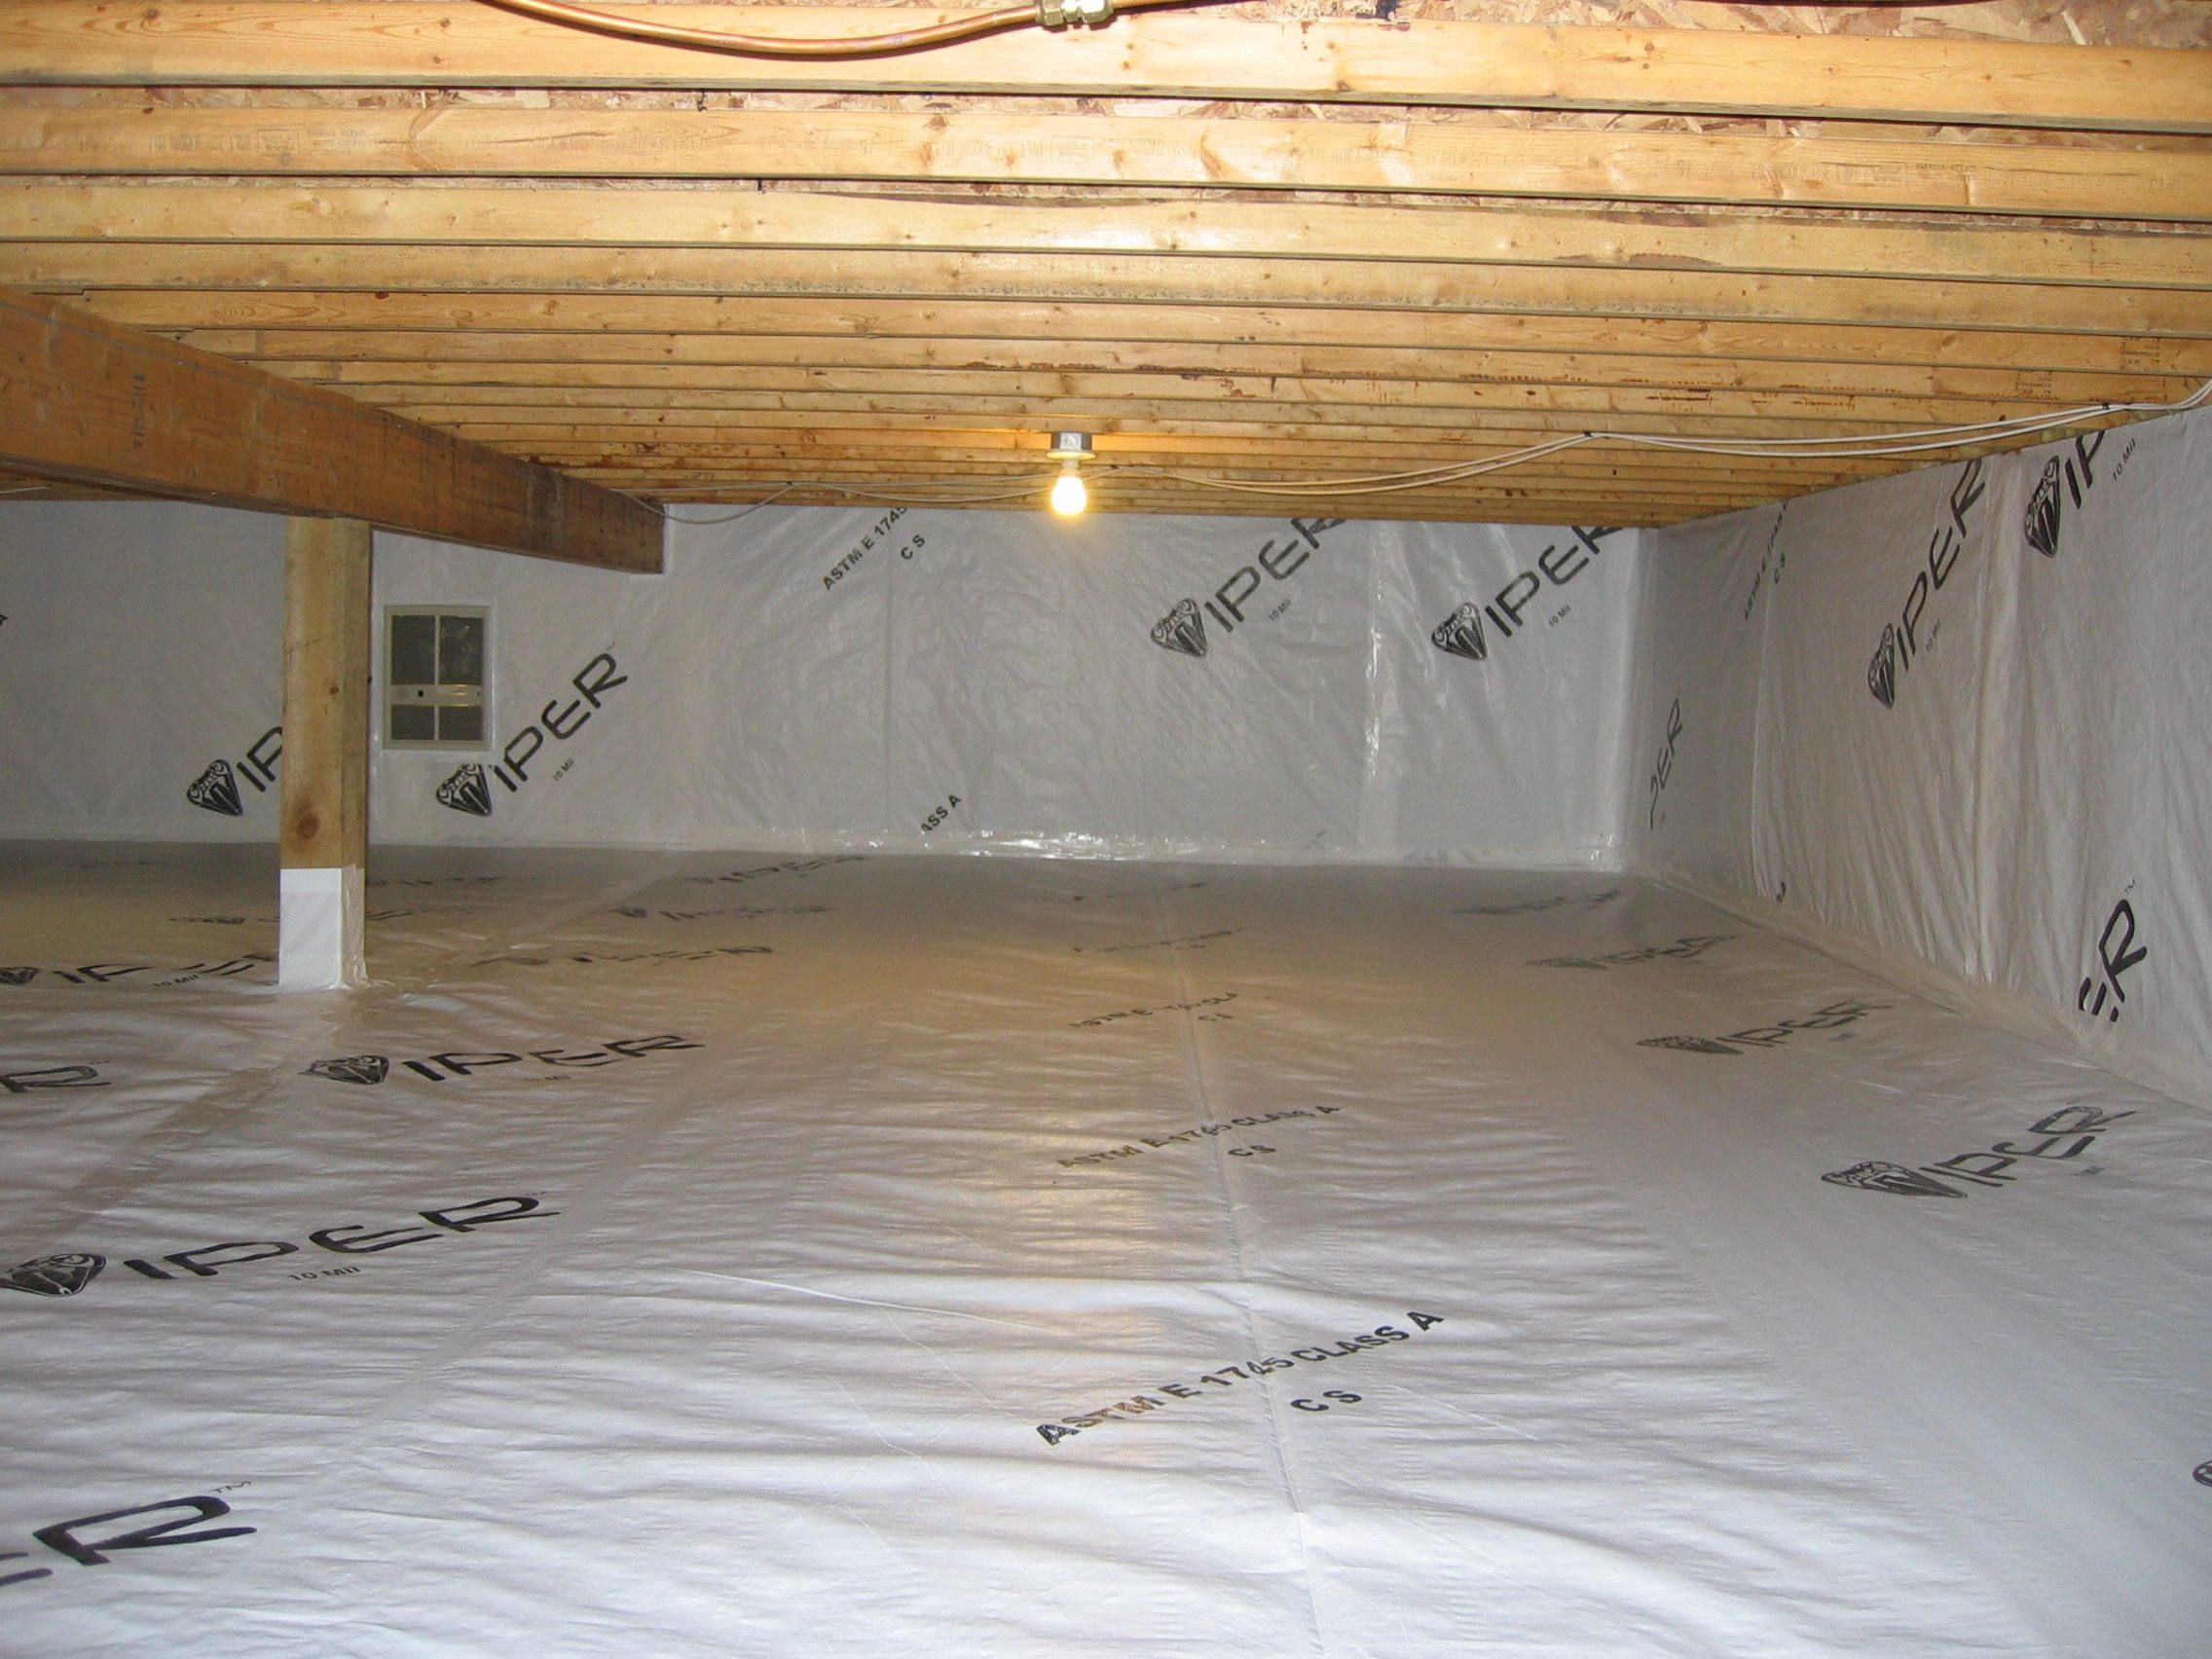 Viper Cs Is A Vapor Barrier Designed Specifically For Controlling Moisture Migration In Crawl Space Applicat Crawlspace Crawl Space Vapor Barrier Home Repairs